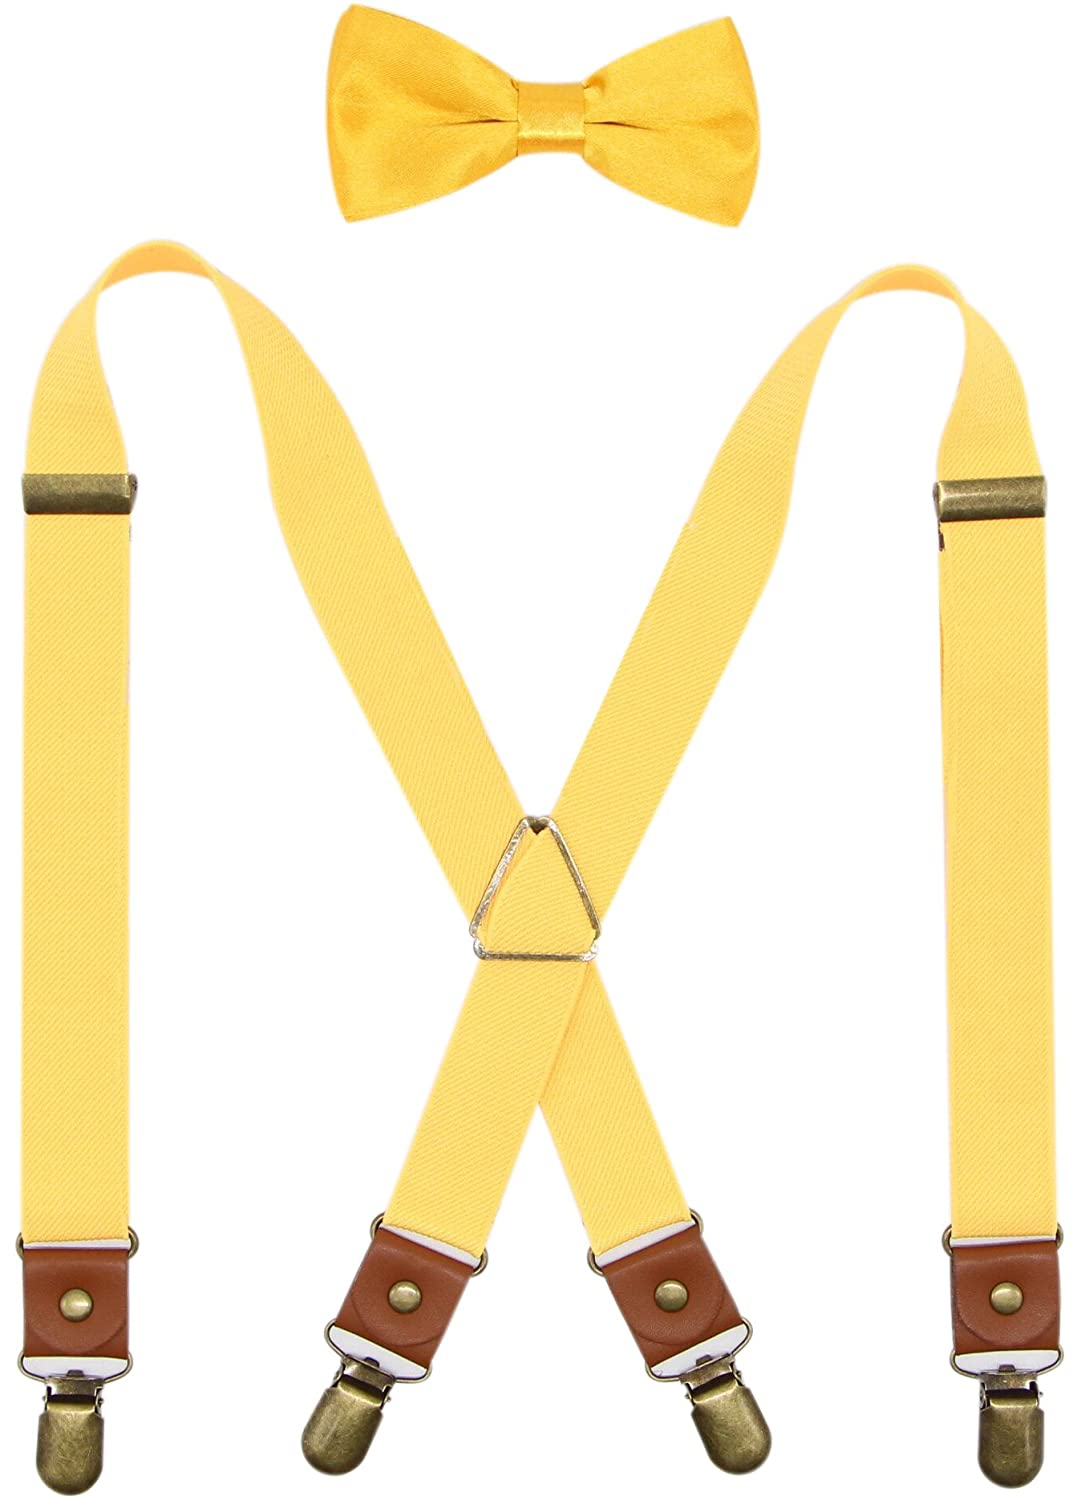 Deluxe Pre-Tied Tuxedo Bow Tie & Suspenders Set For Men & Boys By Bioterti